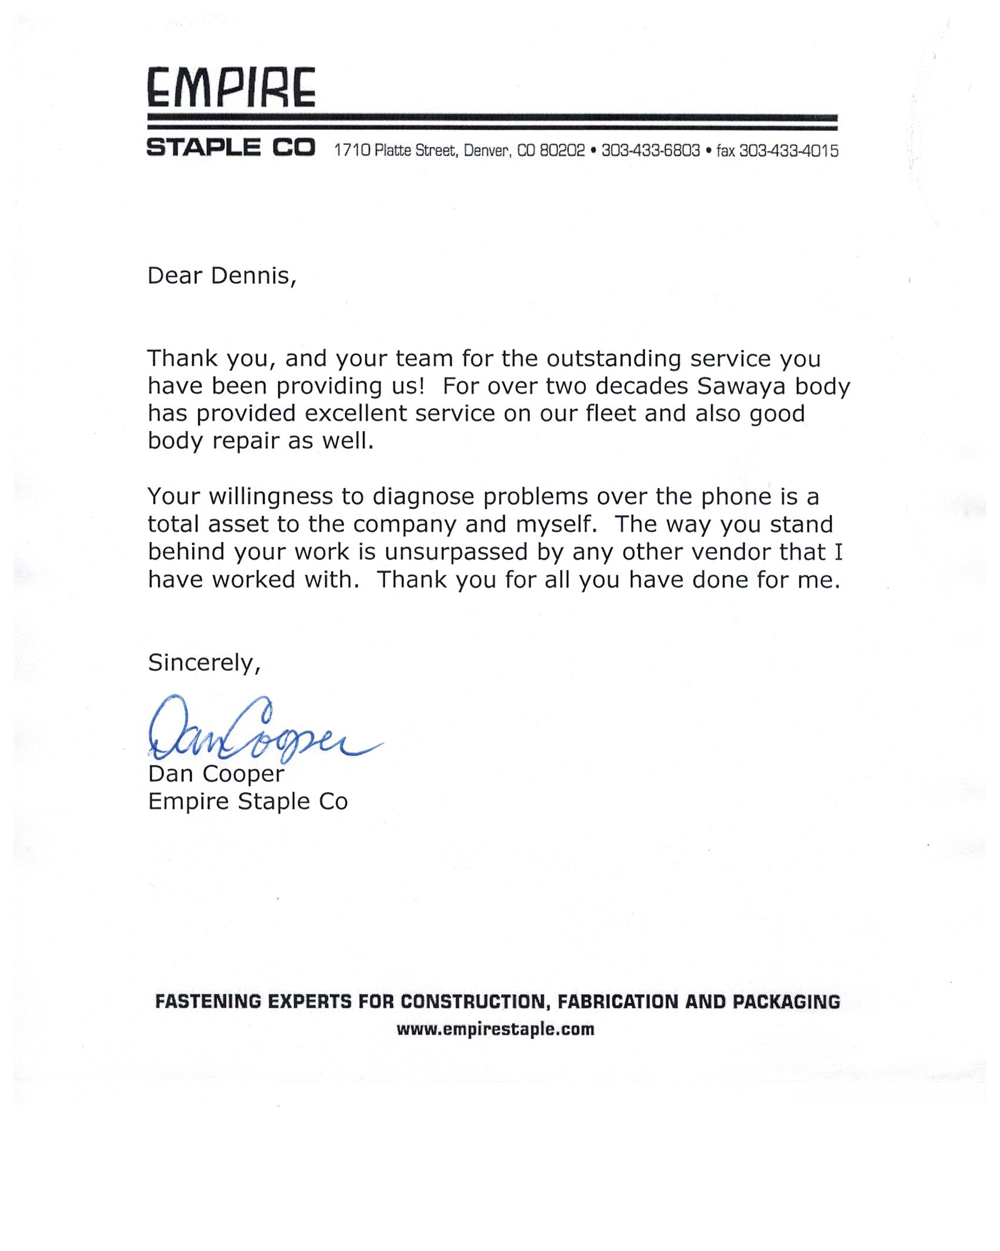 Empire Staple Testimonial letter